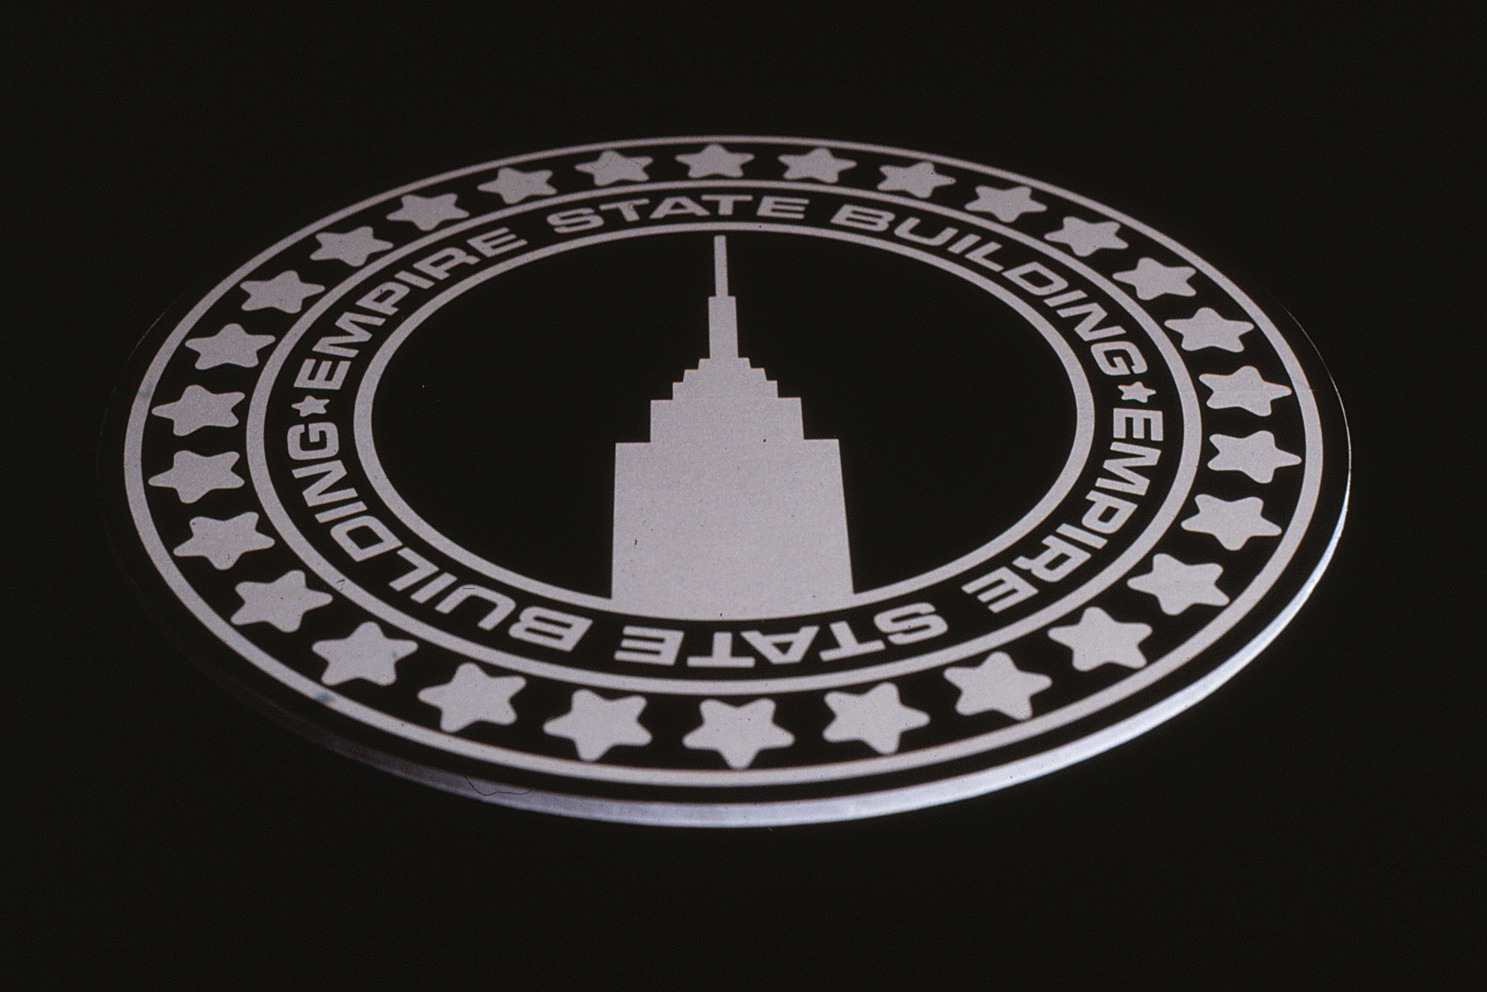 Design of a manhole cover with the Empire State design on it.